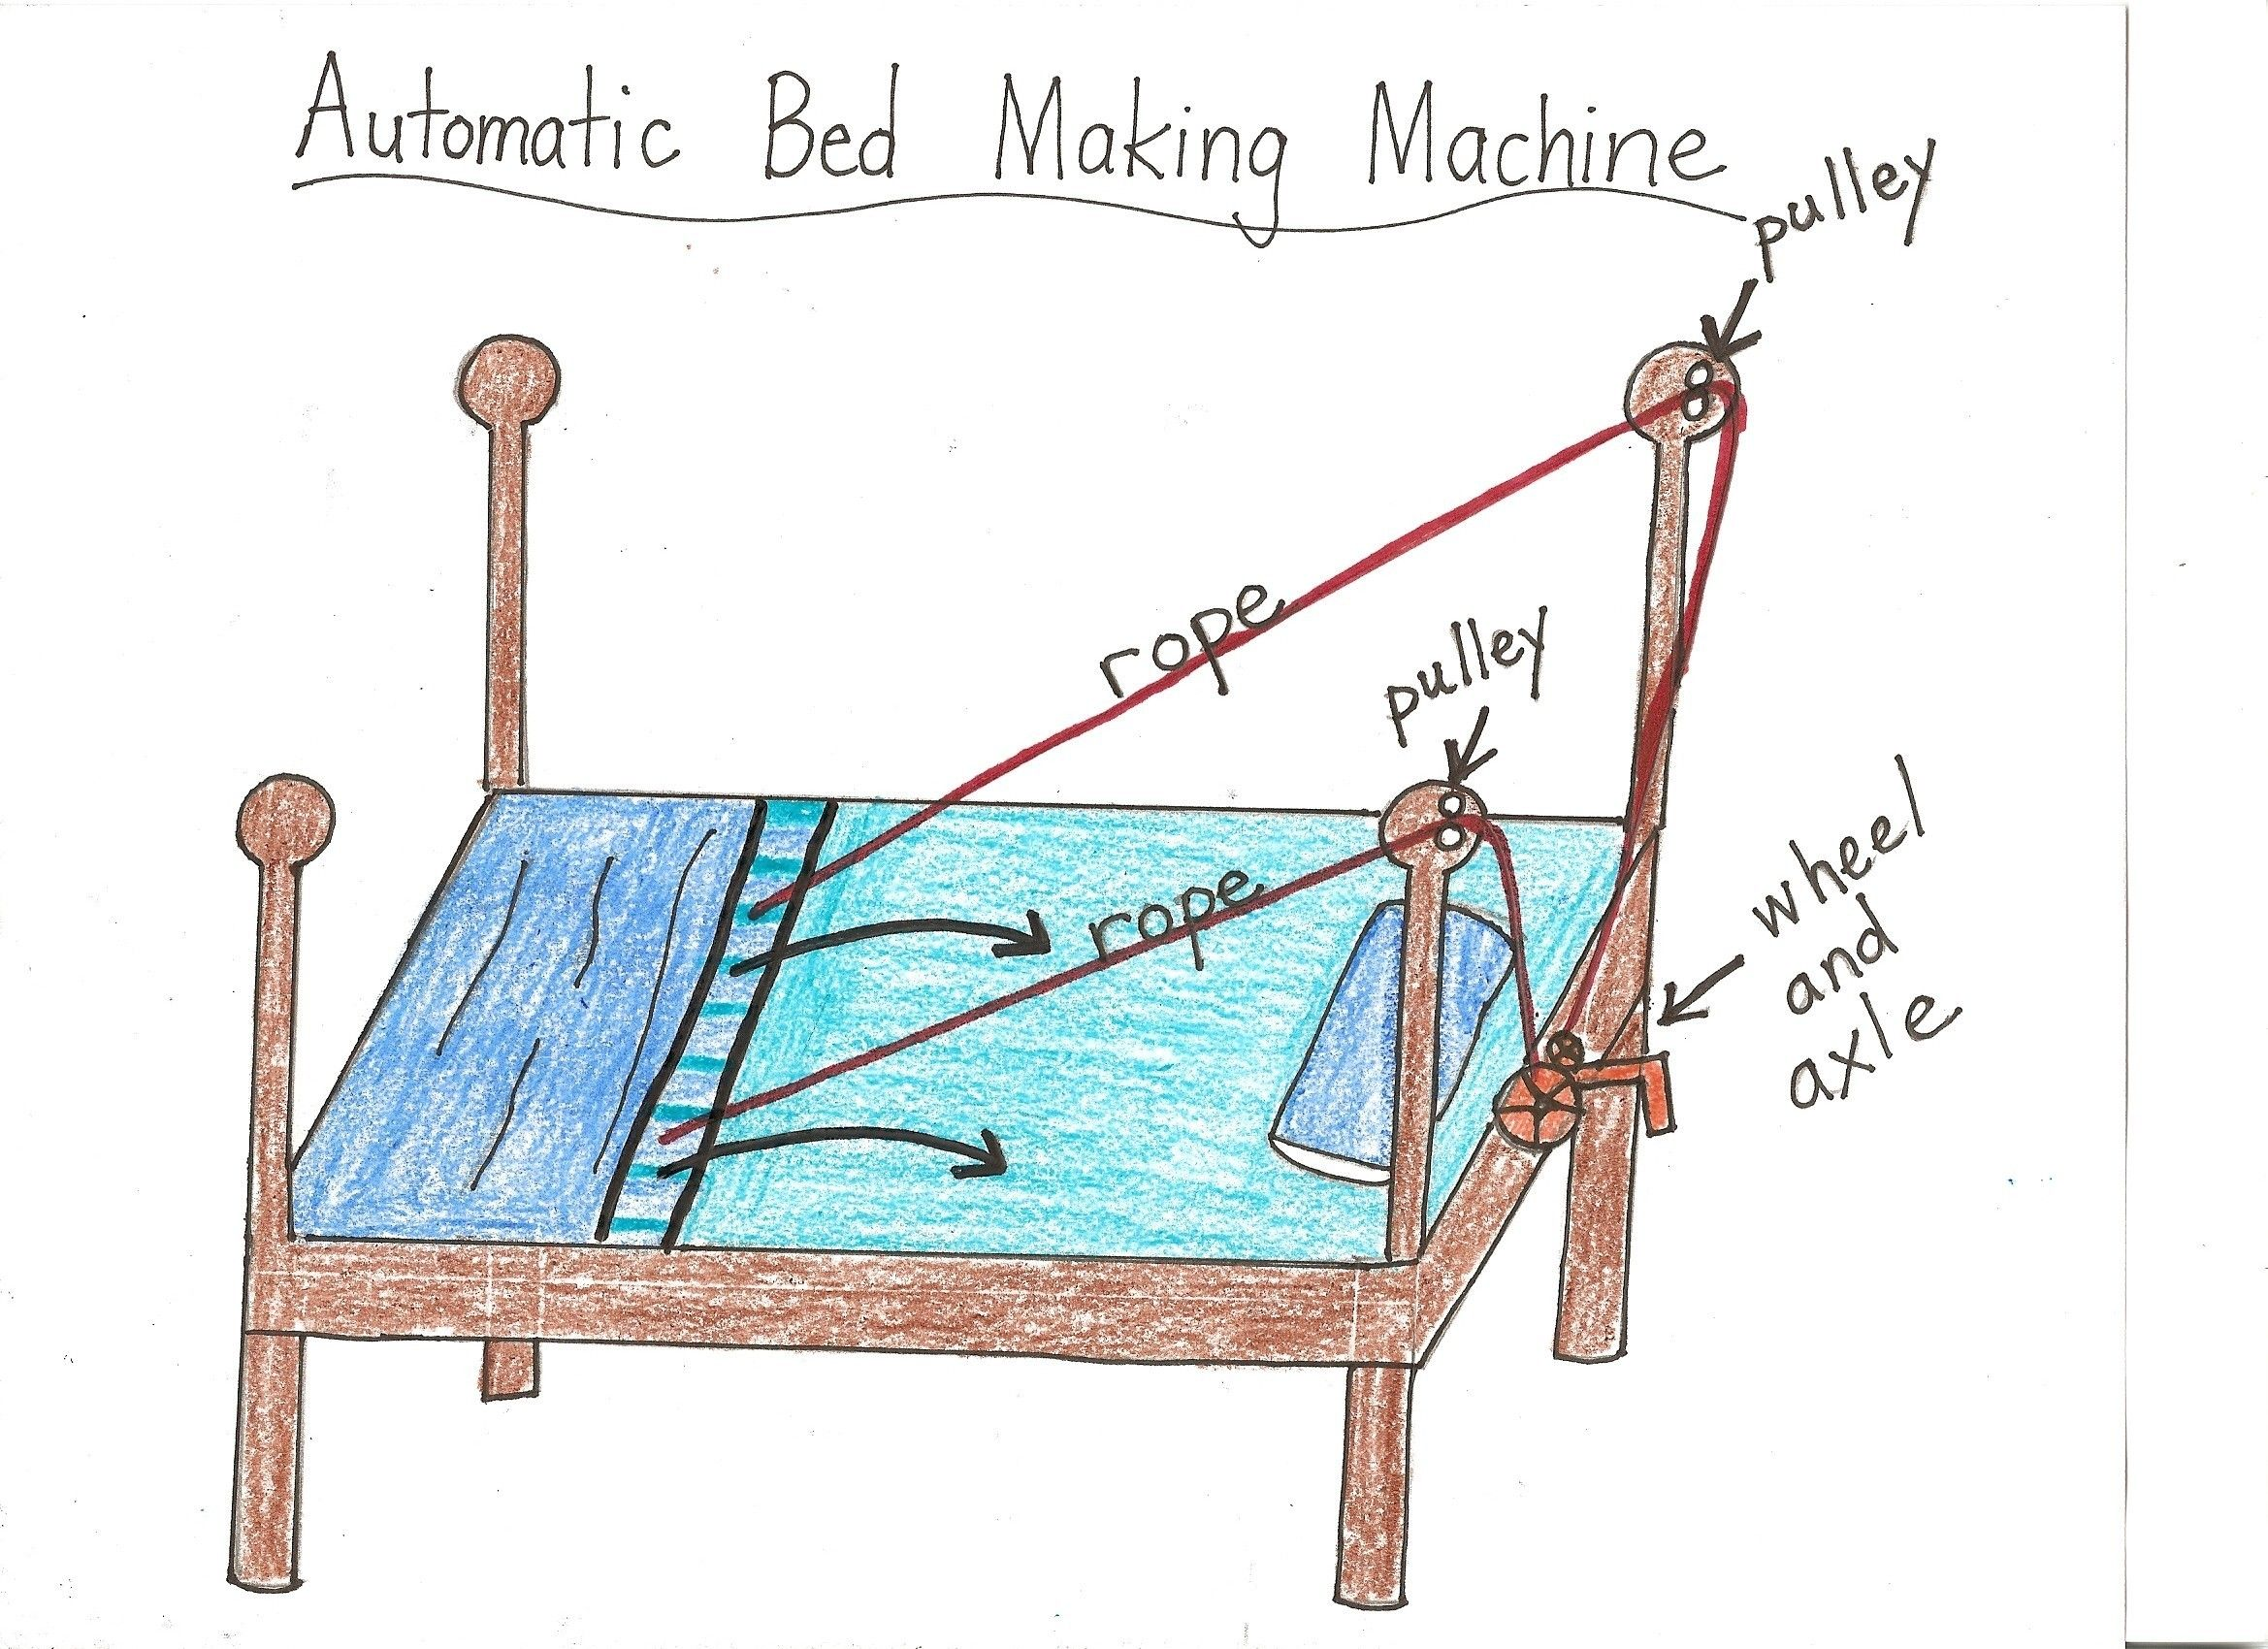 Simple machines project ideas - Simple Machine Projects Bed Making Machine Maybe